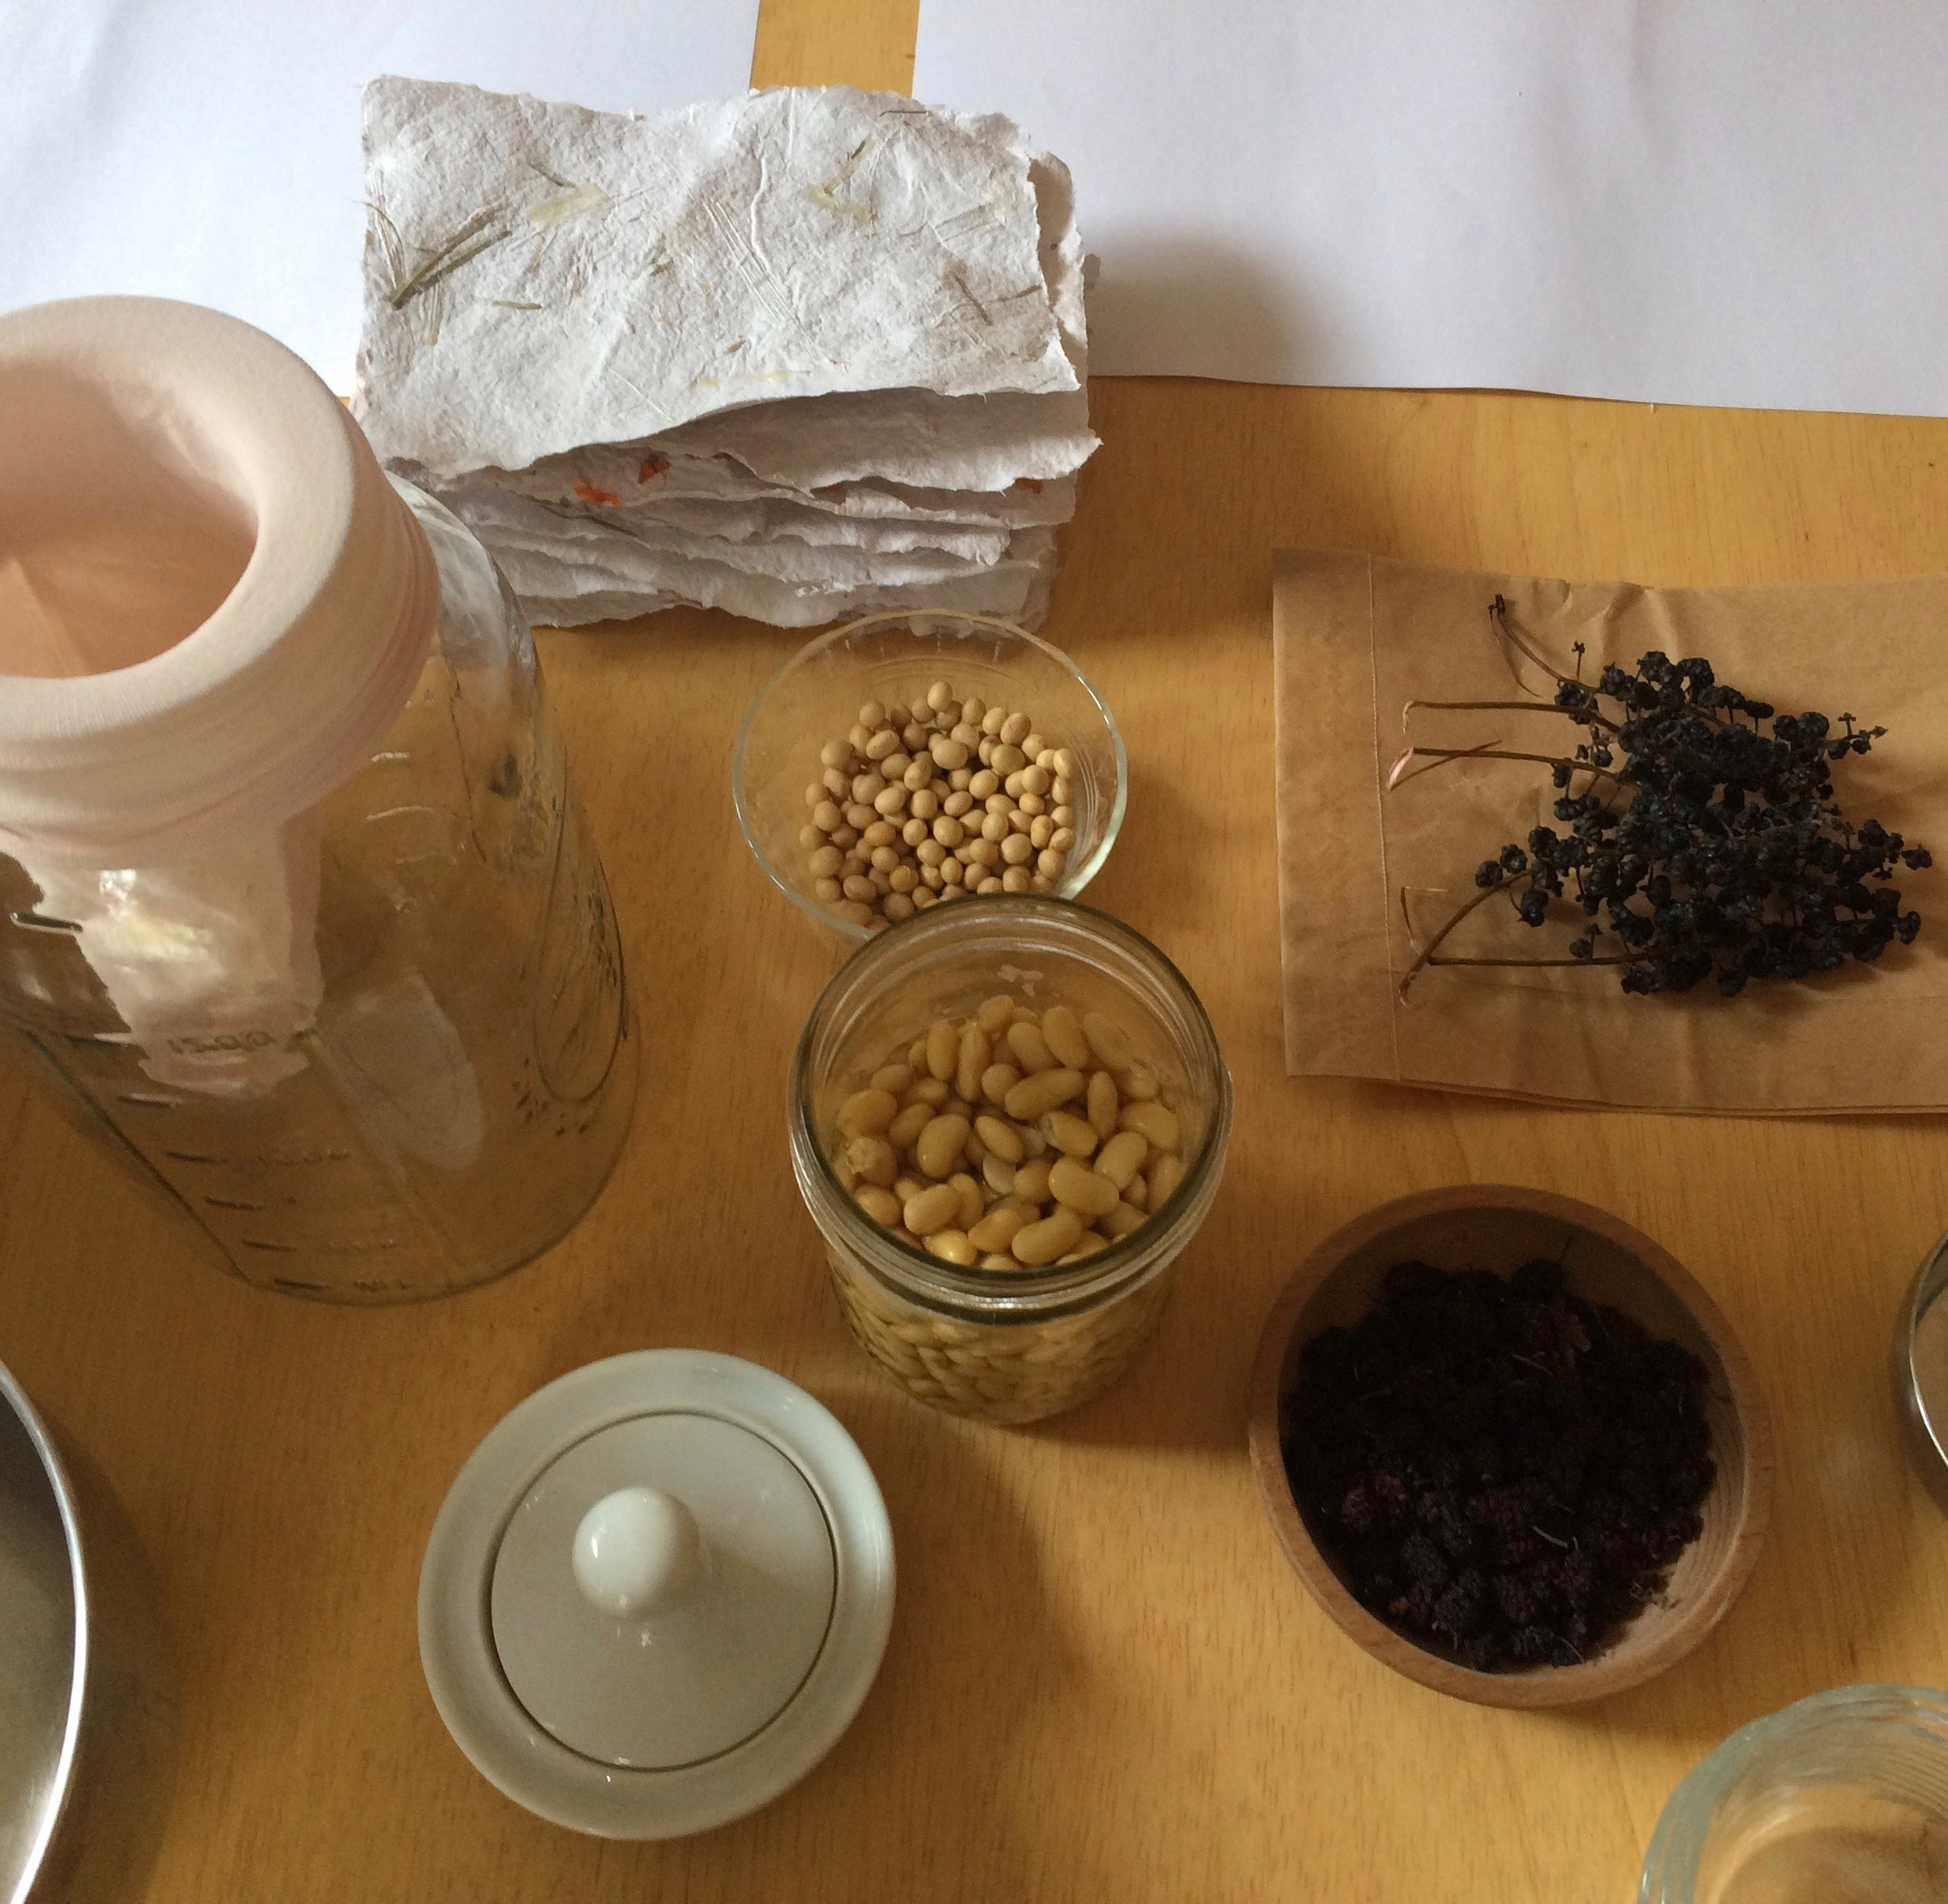 Making soy milk paint from beans and berries to use on homemade paper